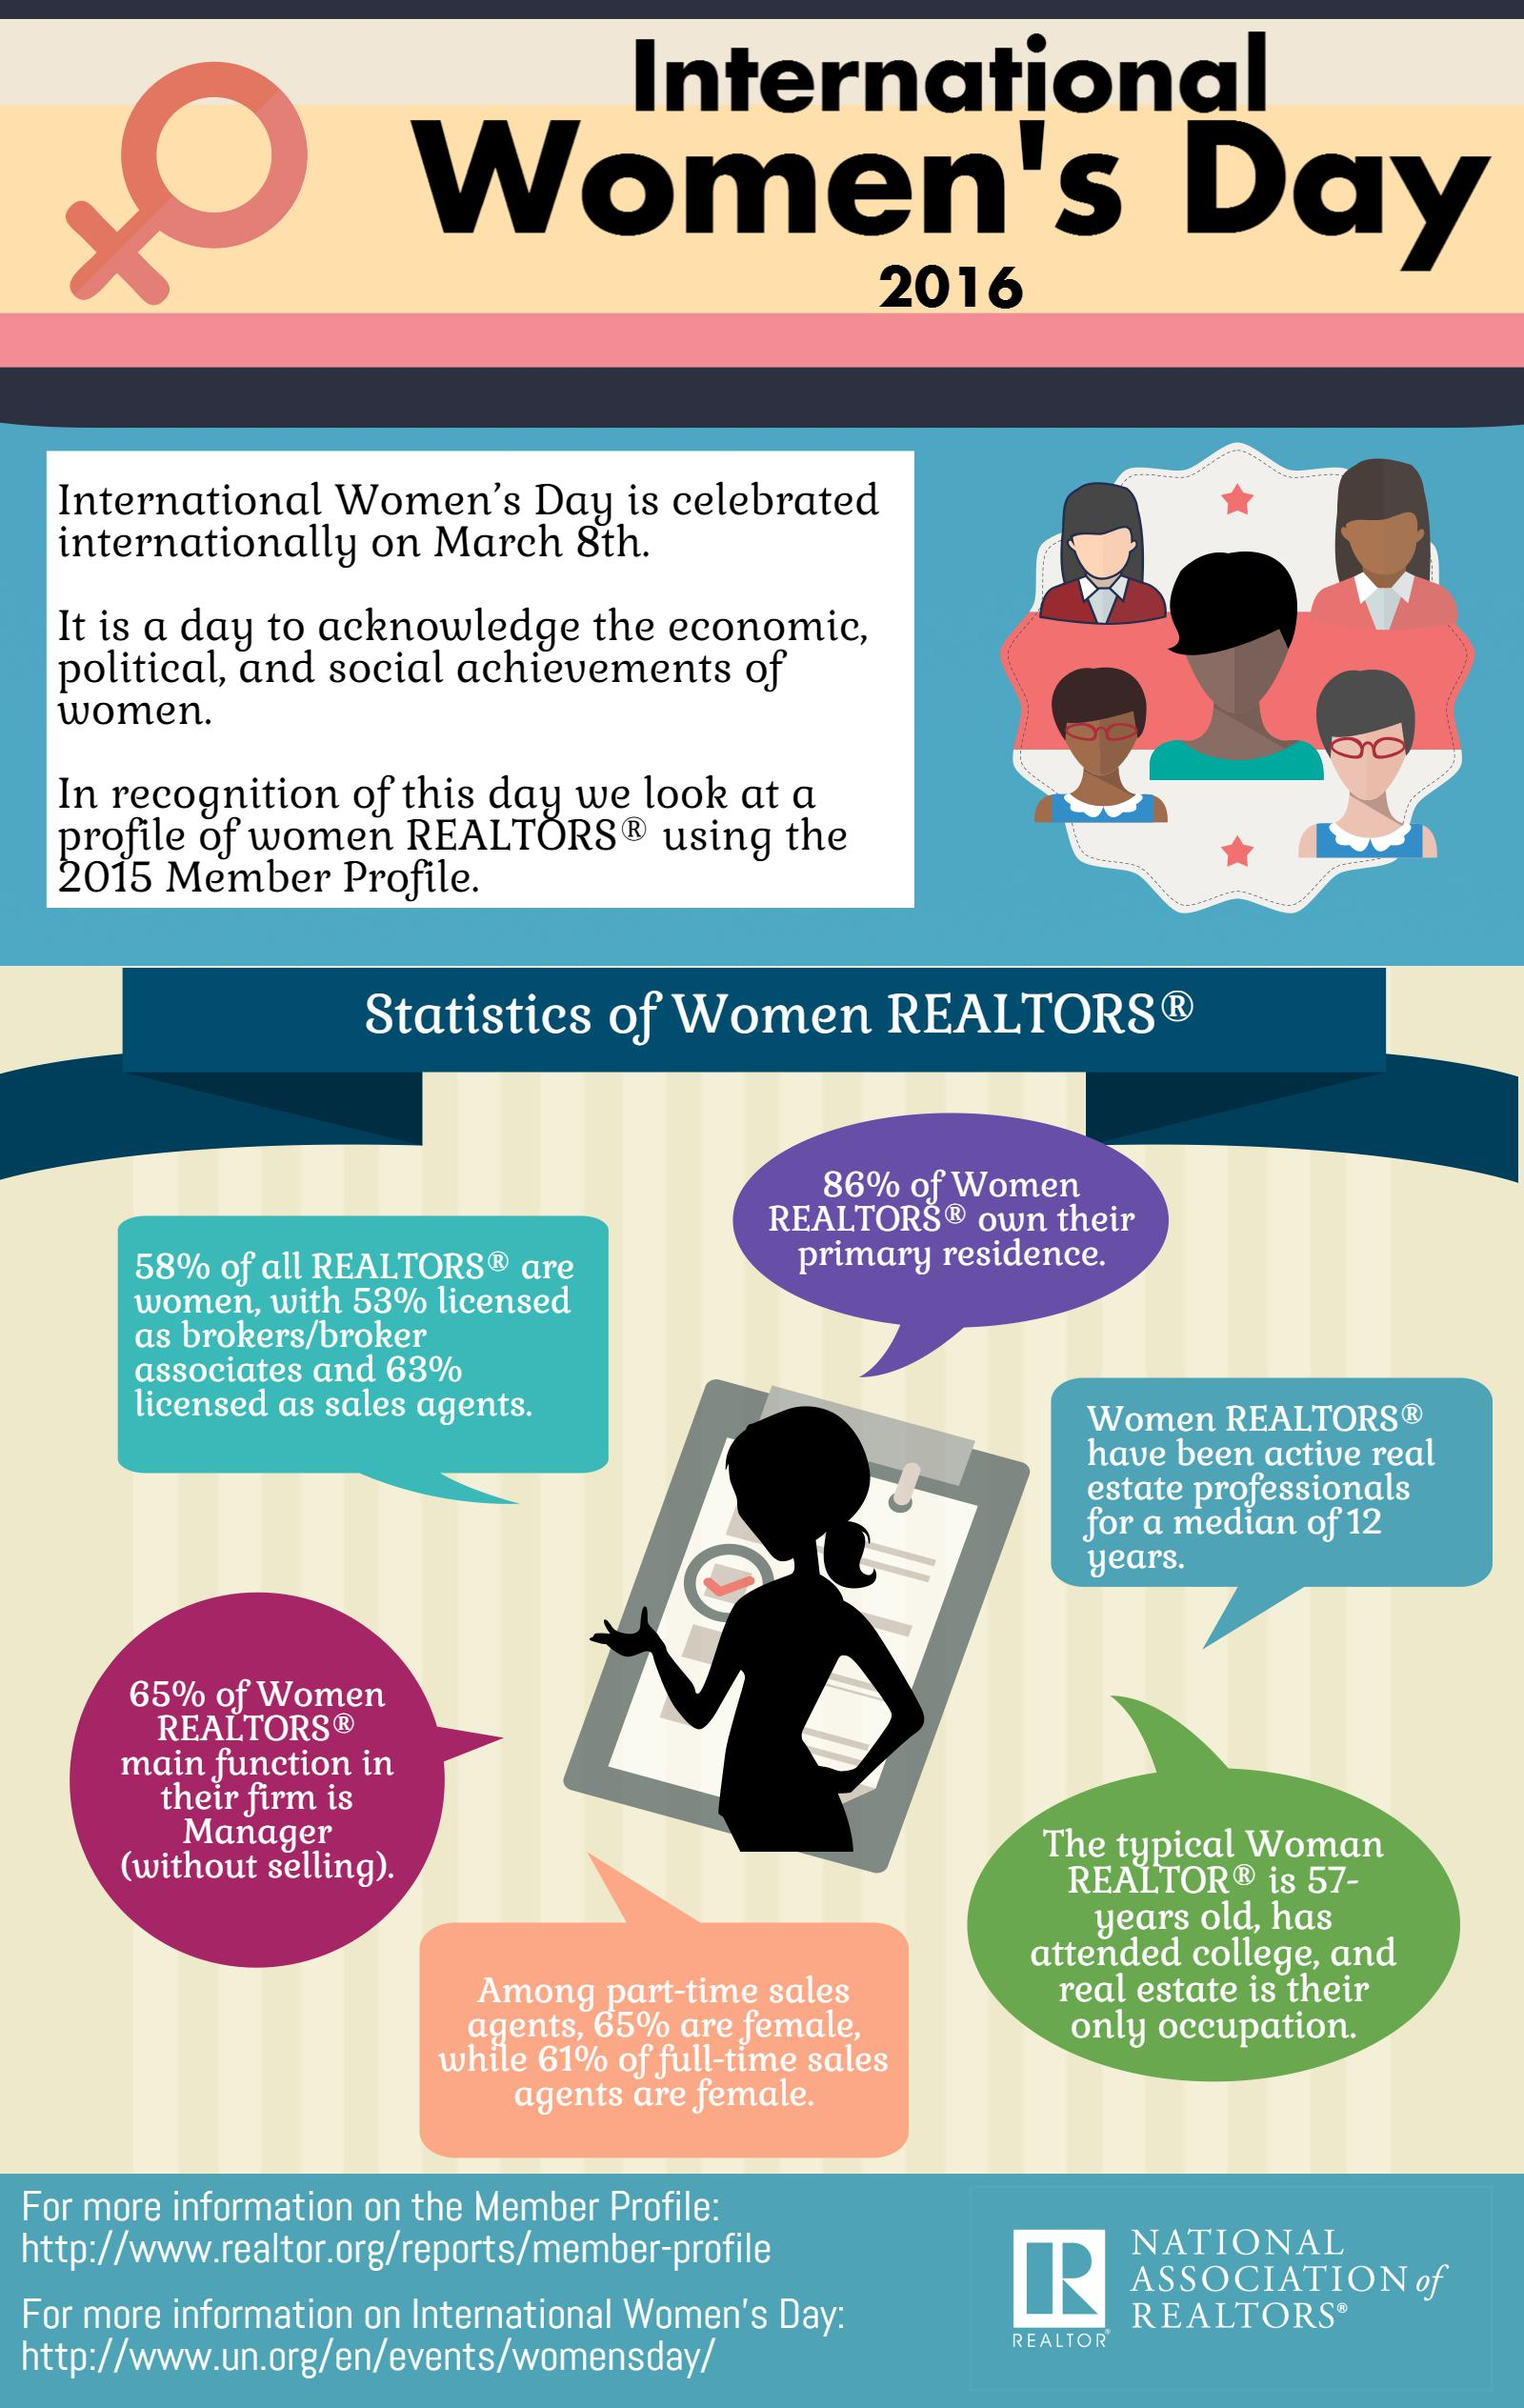 international-women-s-day-2016-short